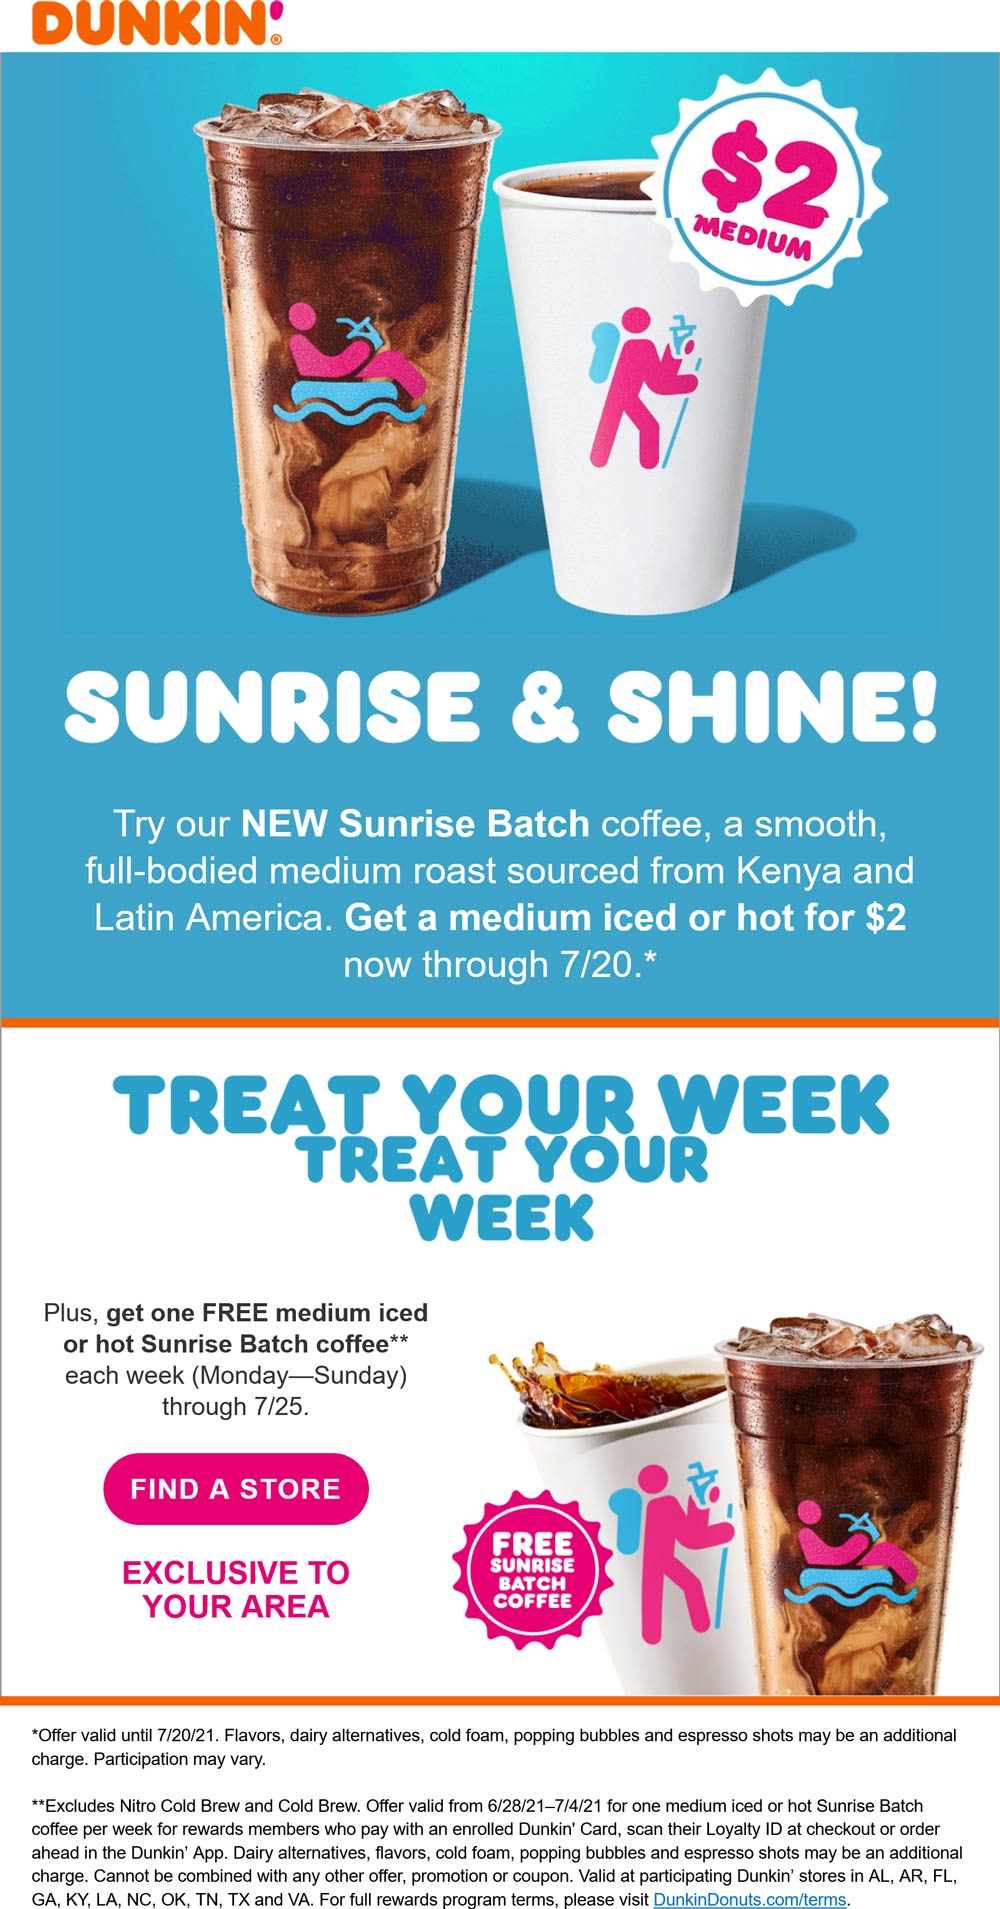 Dunkin restaurants Coupon  Medium iced or hot coffee = $2 also get one free weekly at Dunkin Donuts #dunkin